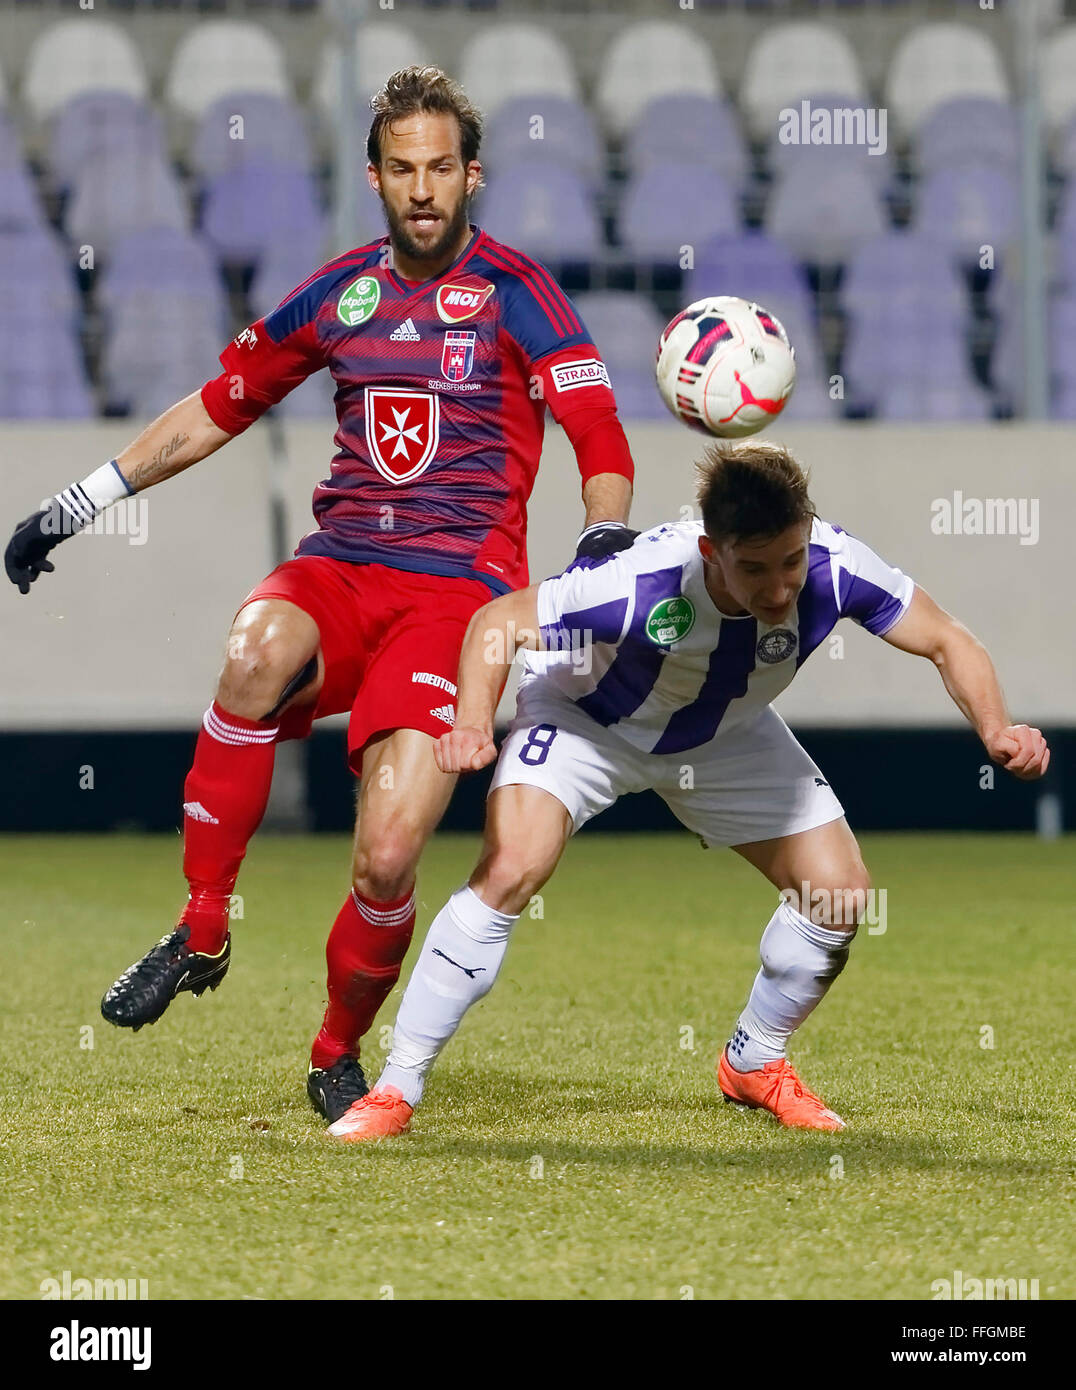 Budapest, Hungary. 13th Feb, 2016. Balazs Balogh of Ujpest (r) heads on target next to Andras Fejes of Videoton - Stock Image